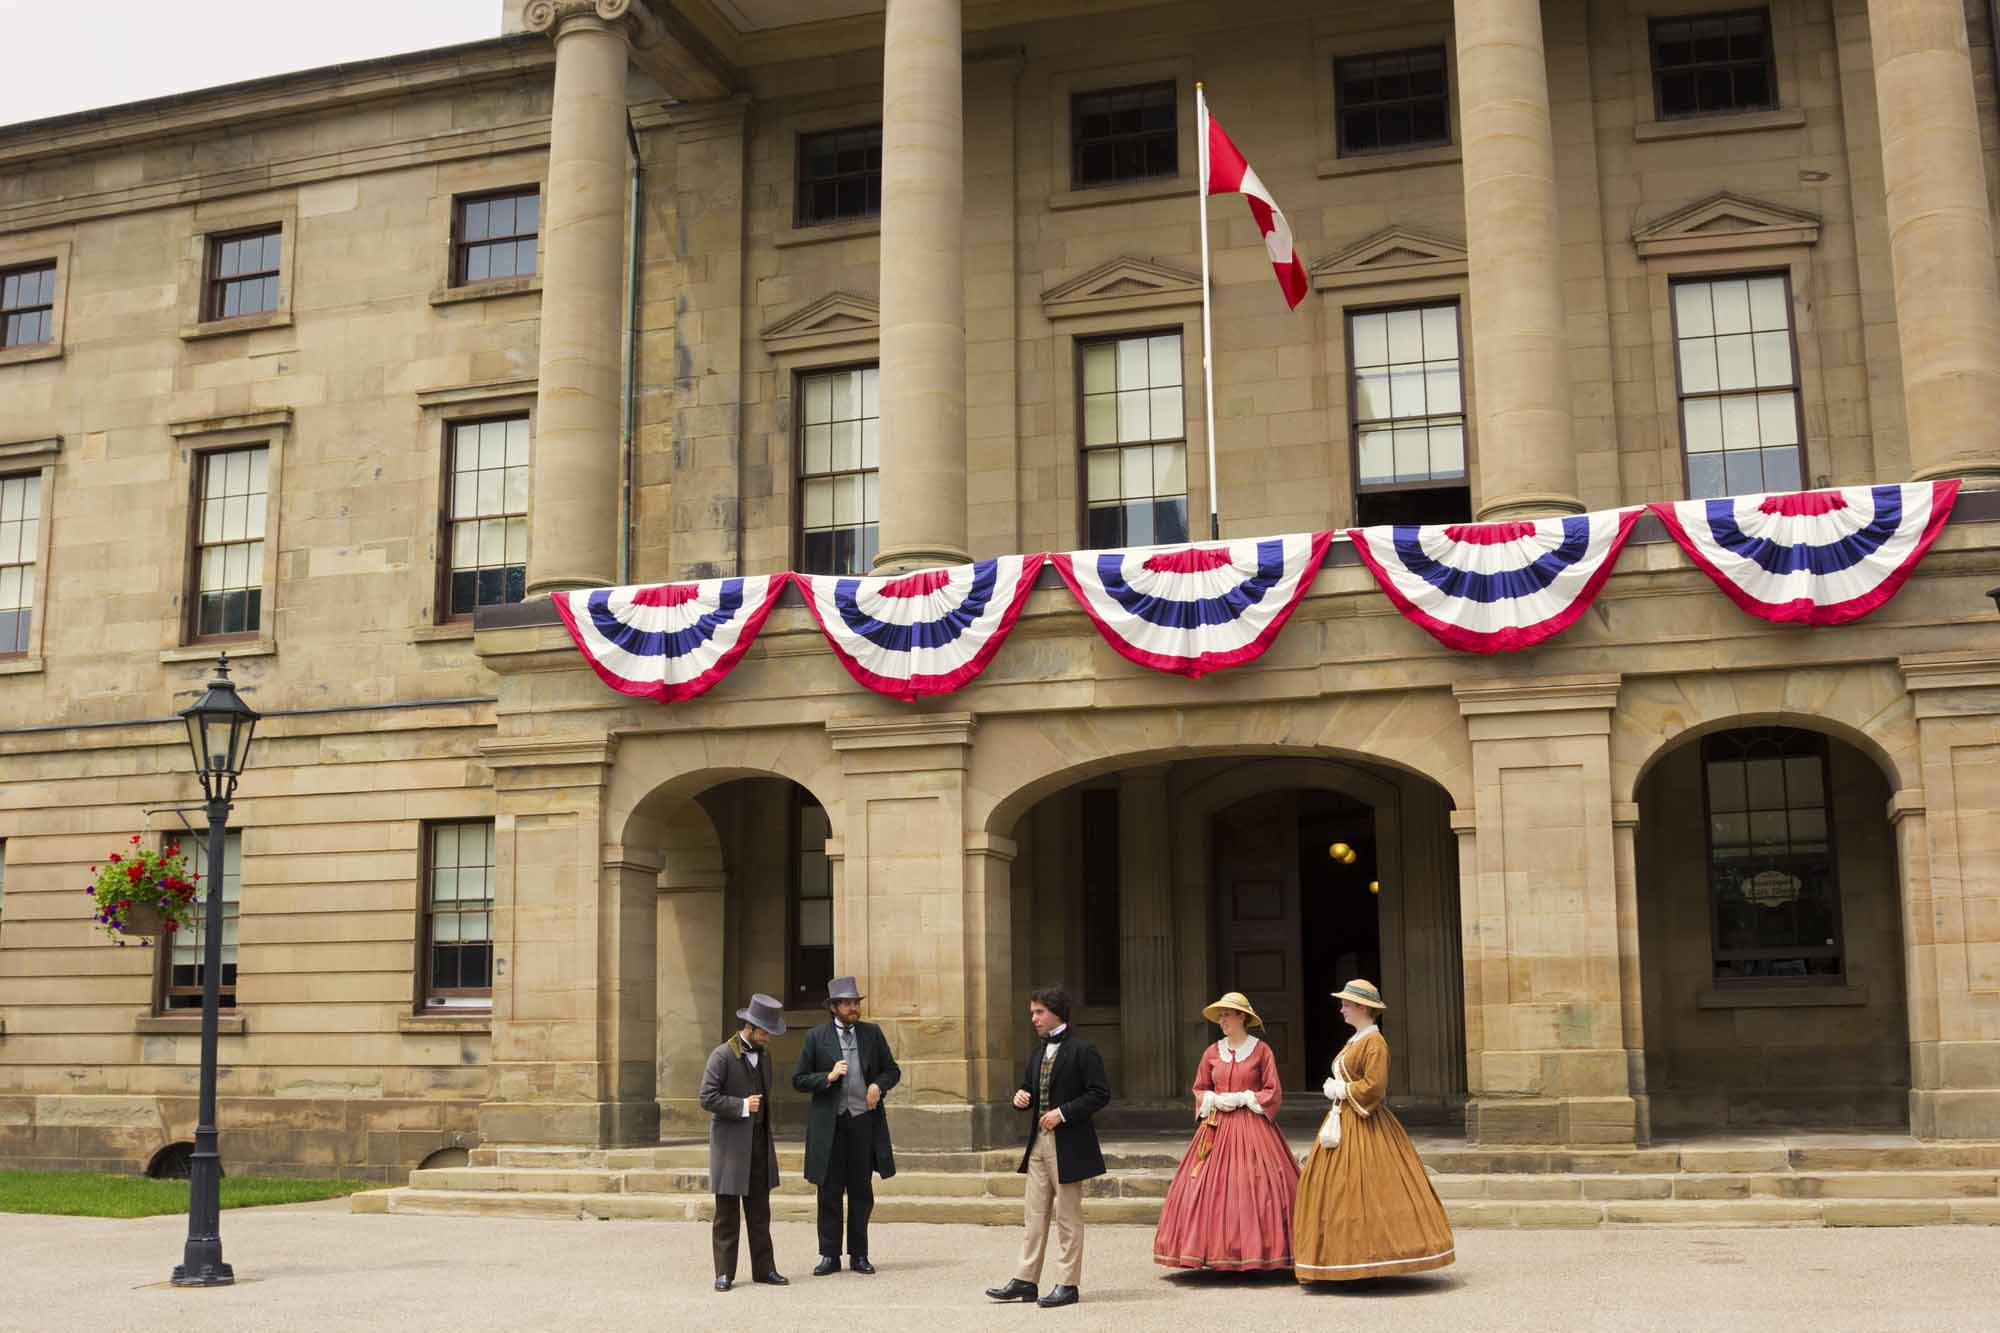 Province House in Charlottetown